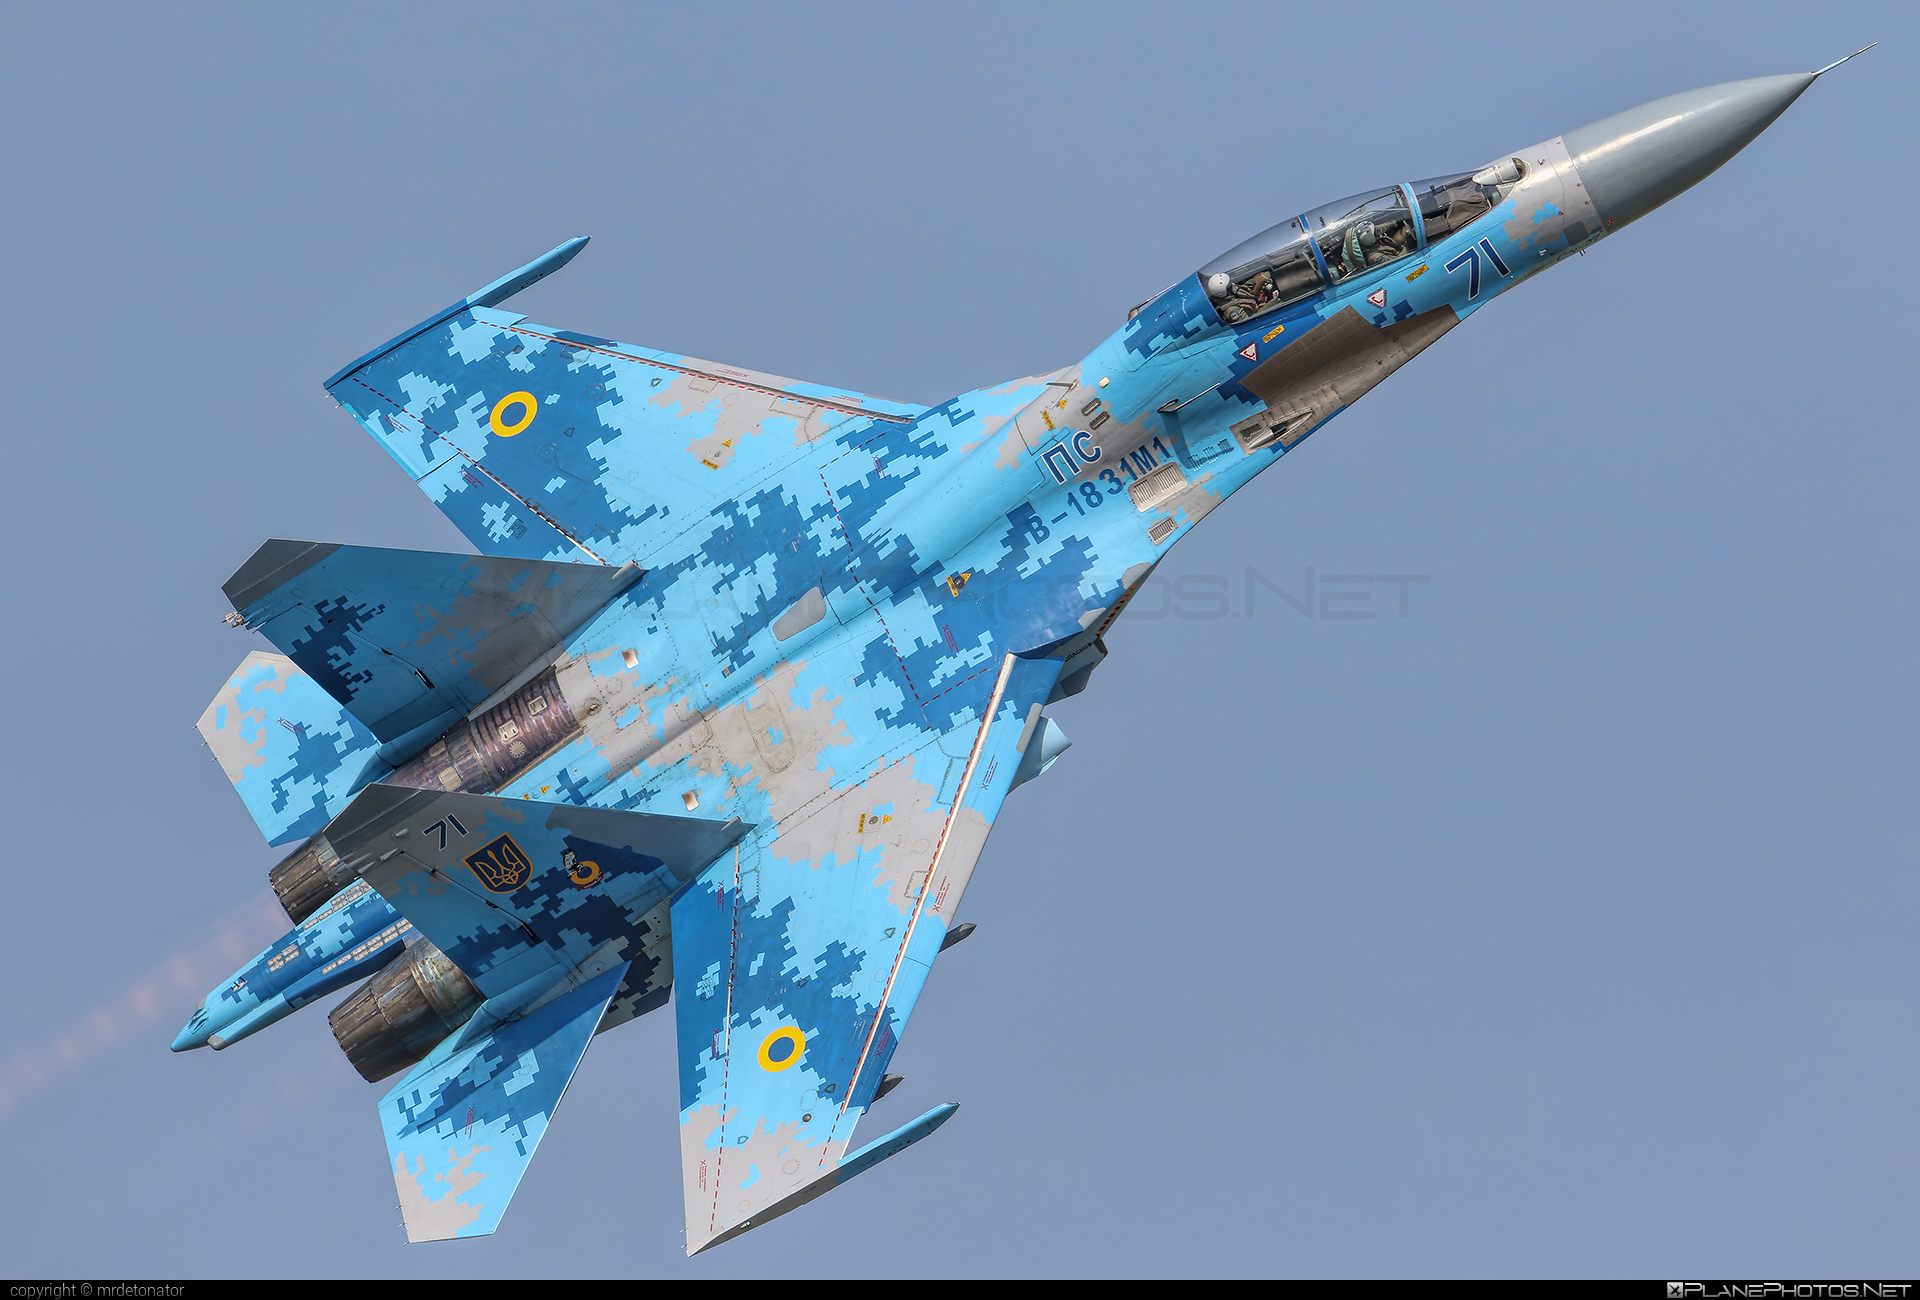 Sukhoi Su-27UB - 71 operated by Povitryani Syly Ukrayiny (Ukrainian Air Force) #povitryanisylyukrayiny #radomairshow #radomairshow2018 #su27 #su27ub #sukhoi #sukhoi27 #ukrainianairforce